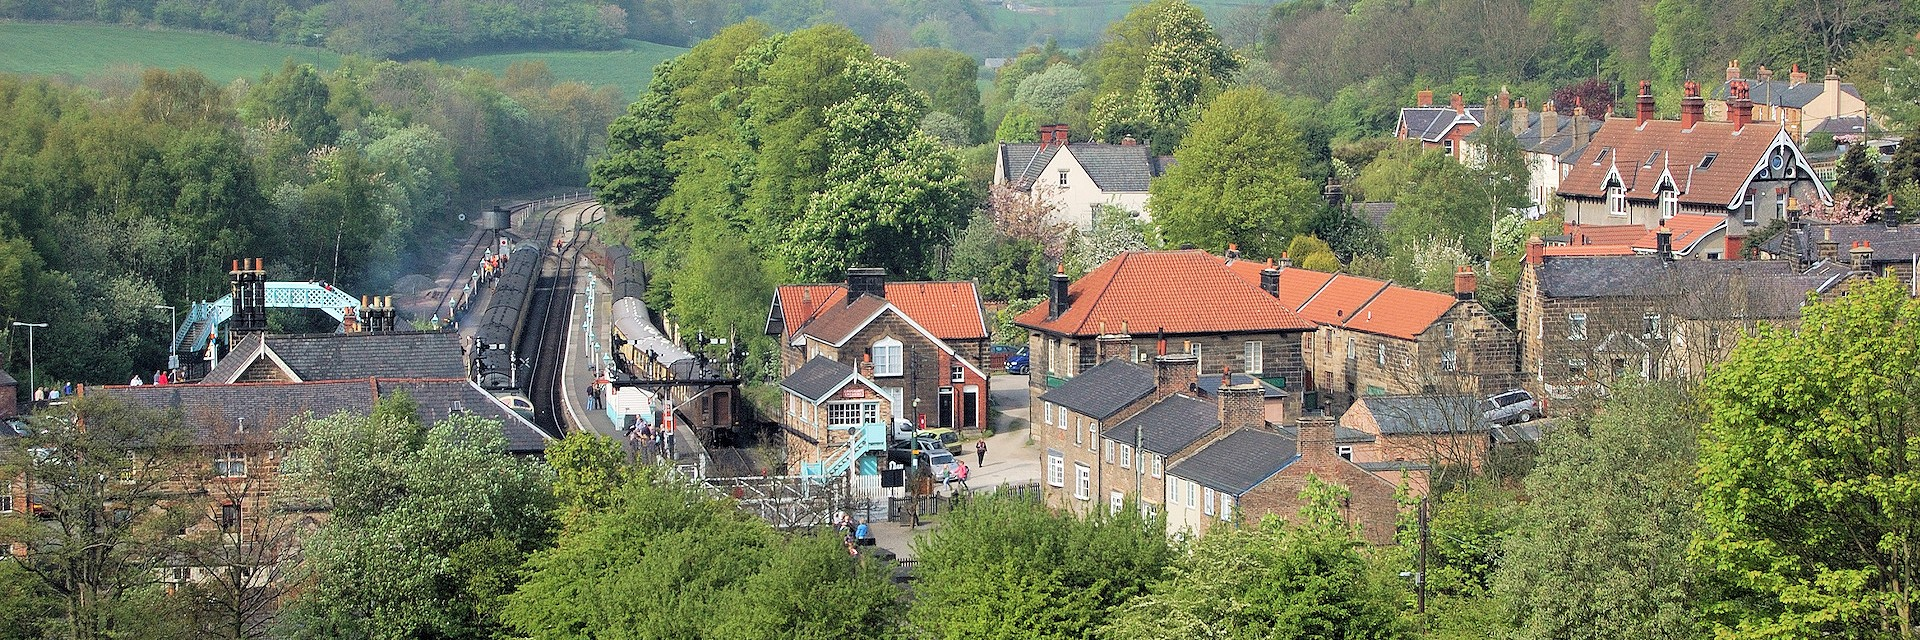 Grosmont Village and Train Station